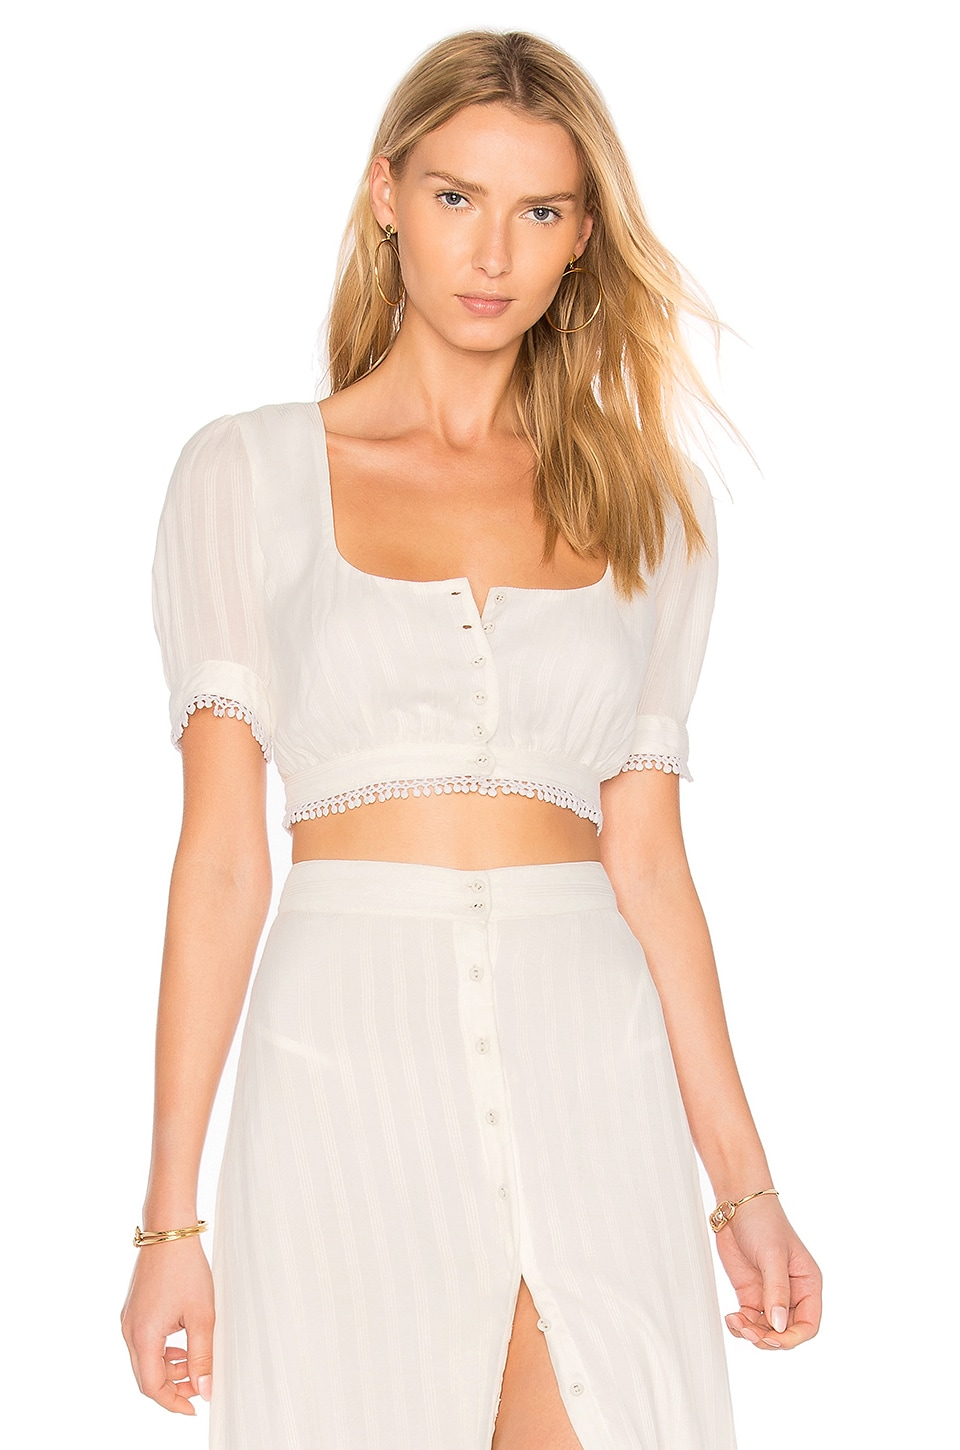 MAJORELLE Cactus Top in Ivory